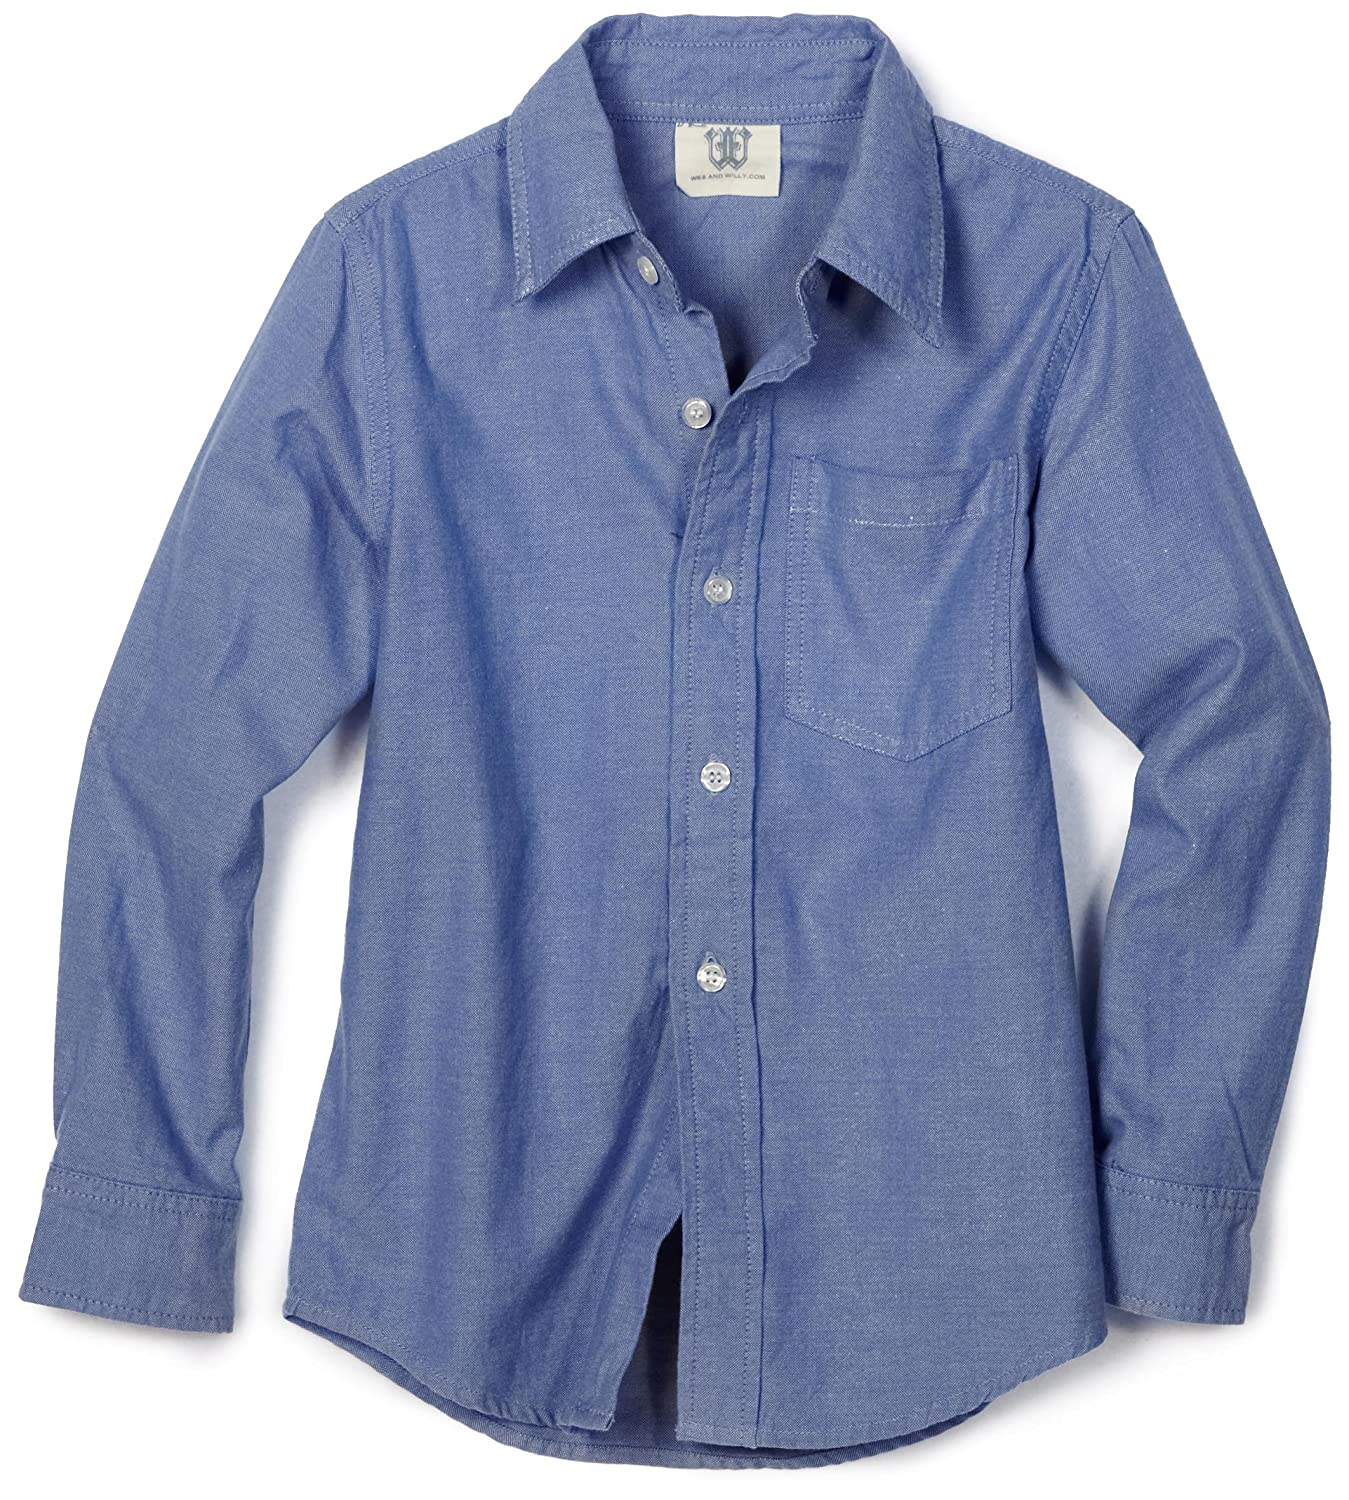 Wes and Willy Little Boys Toddler Basic Long-Sleeve Oxford Dress Shirt 3229